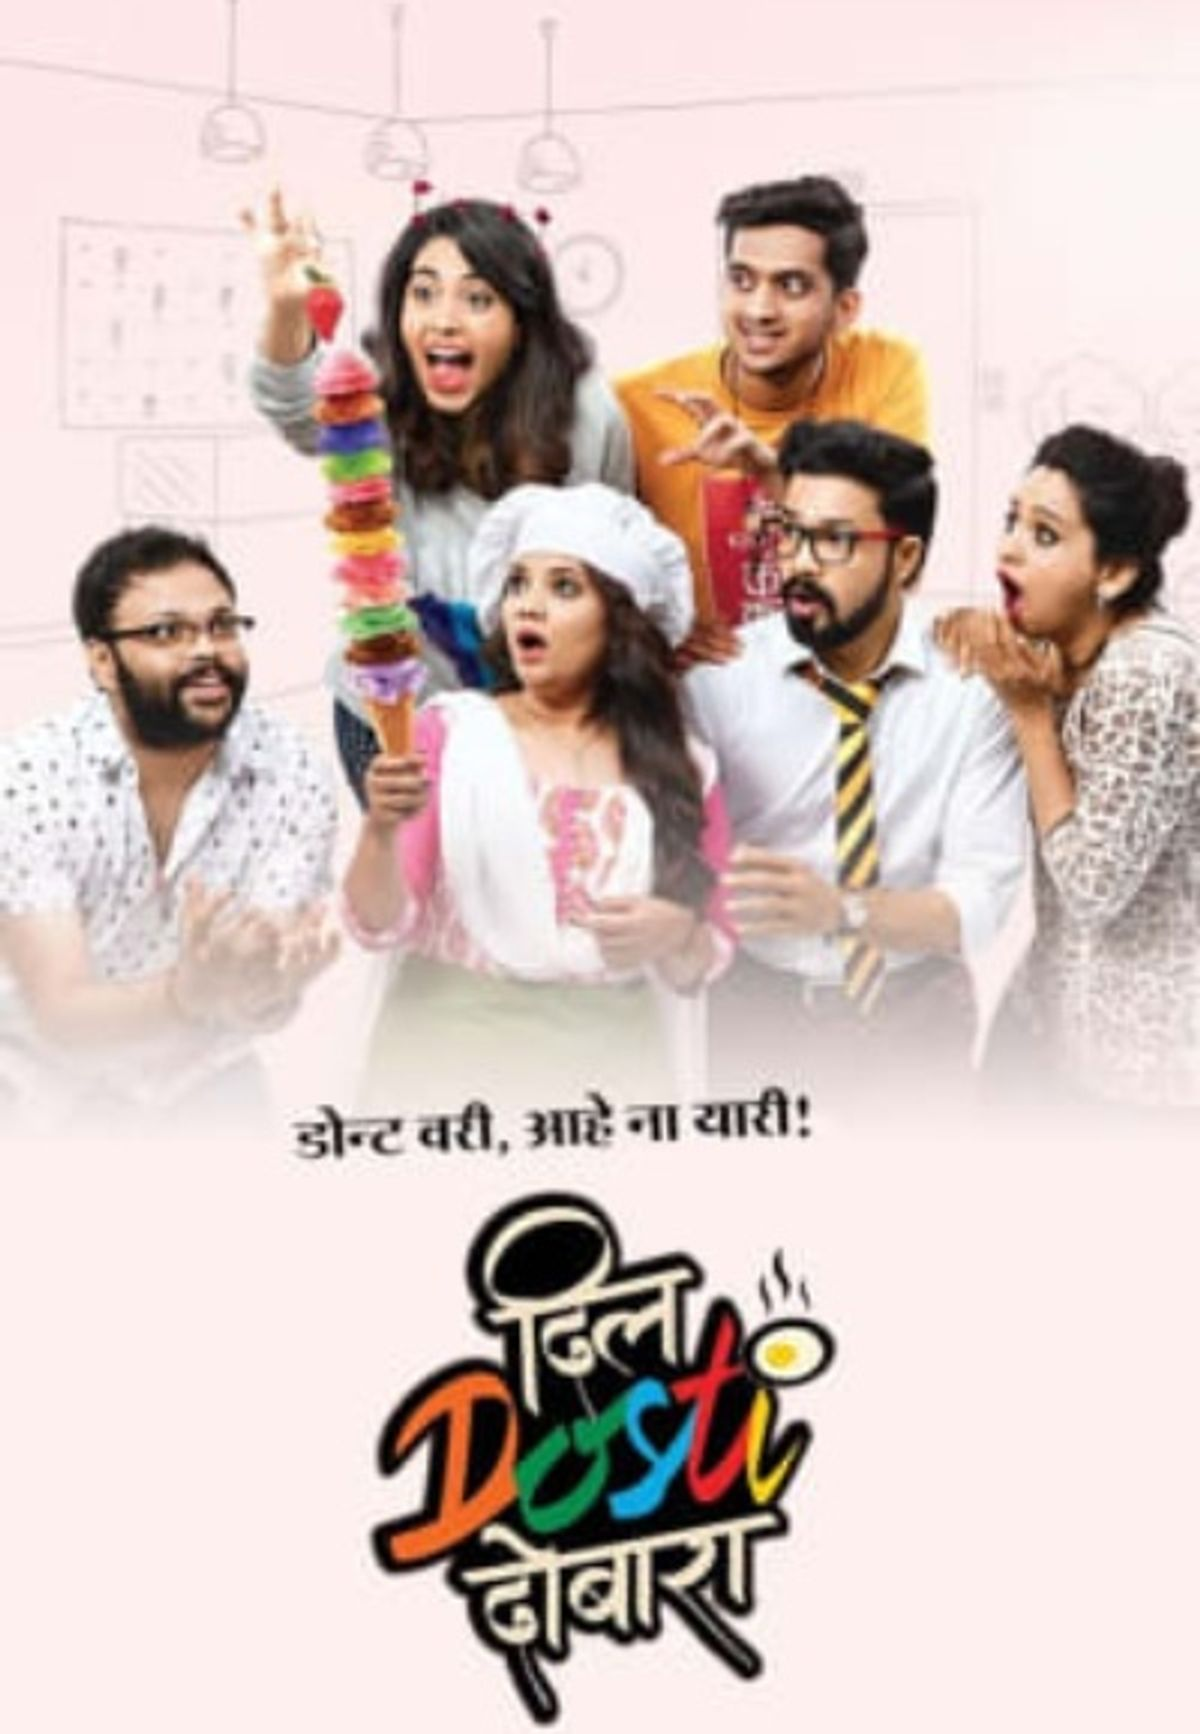 Sakhi Gokhale Best Movies, TV Shows and Web Series List